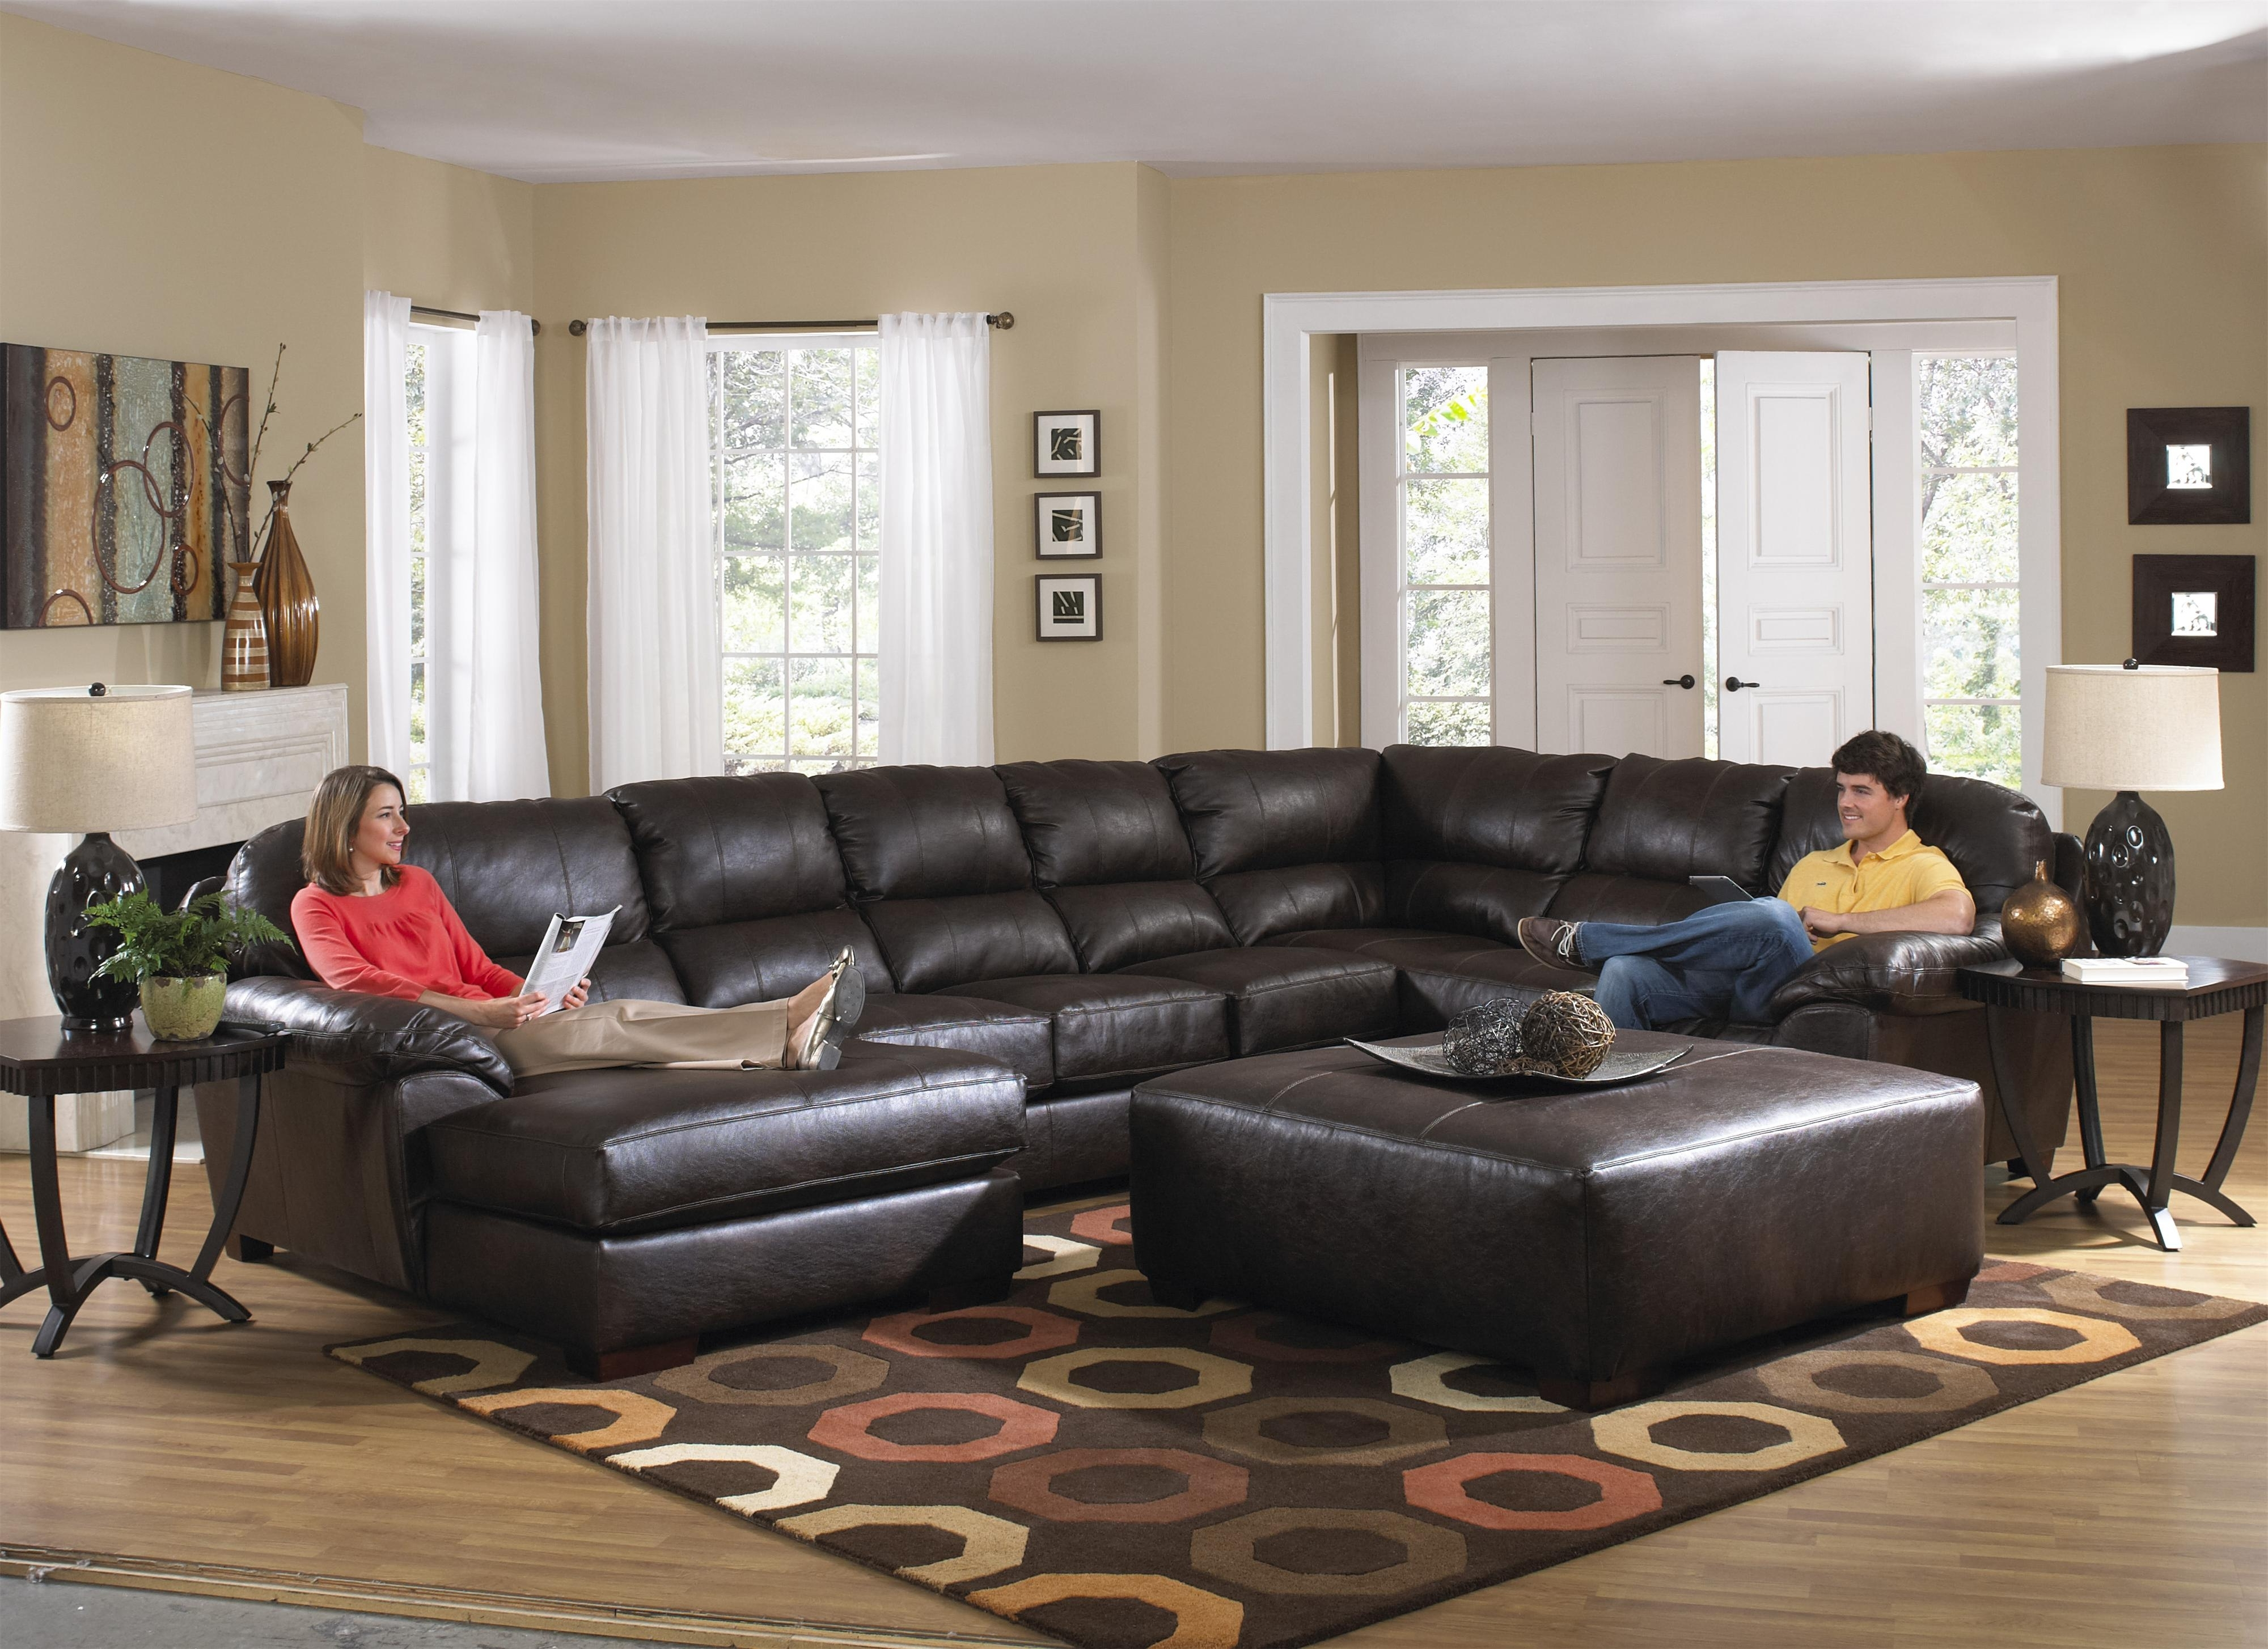 Couches With Large Ottoman Within Fashionable Oversized Couches Ashley Furniture Extra Deep Couch Oversized (View 10 of 20)